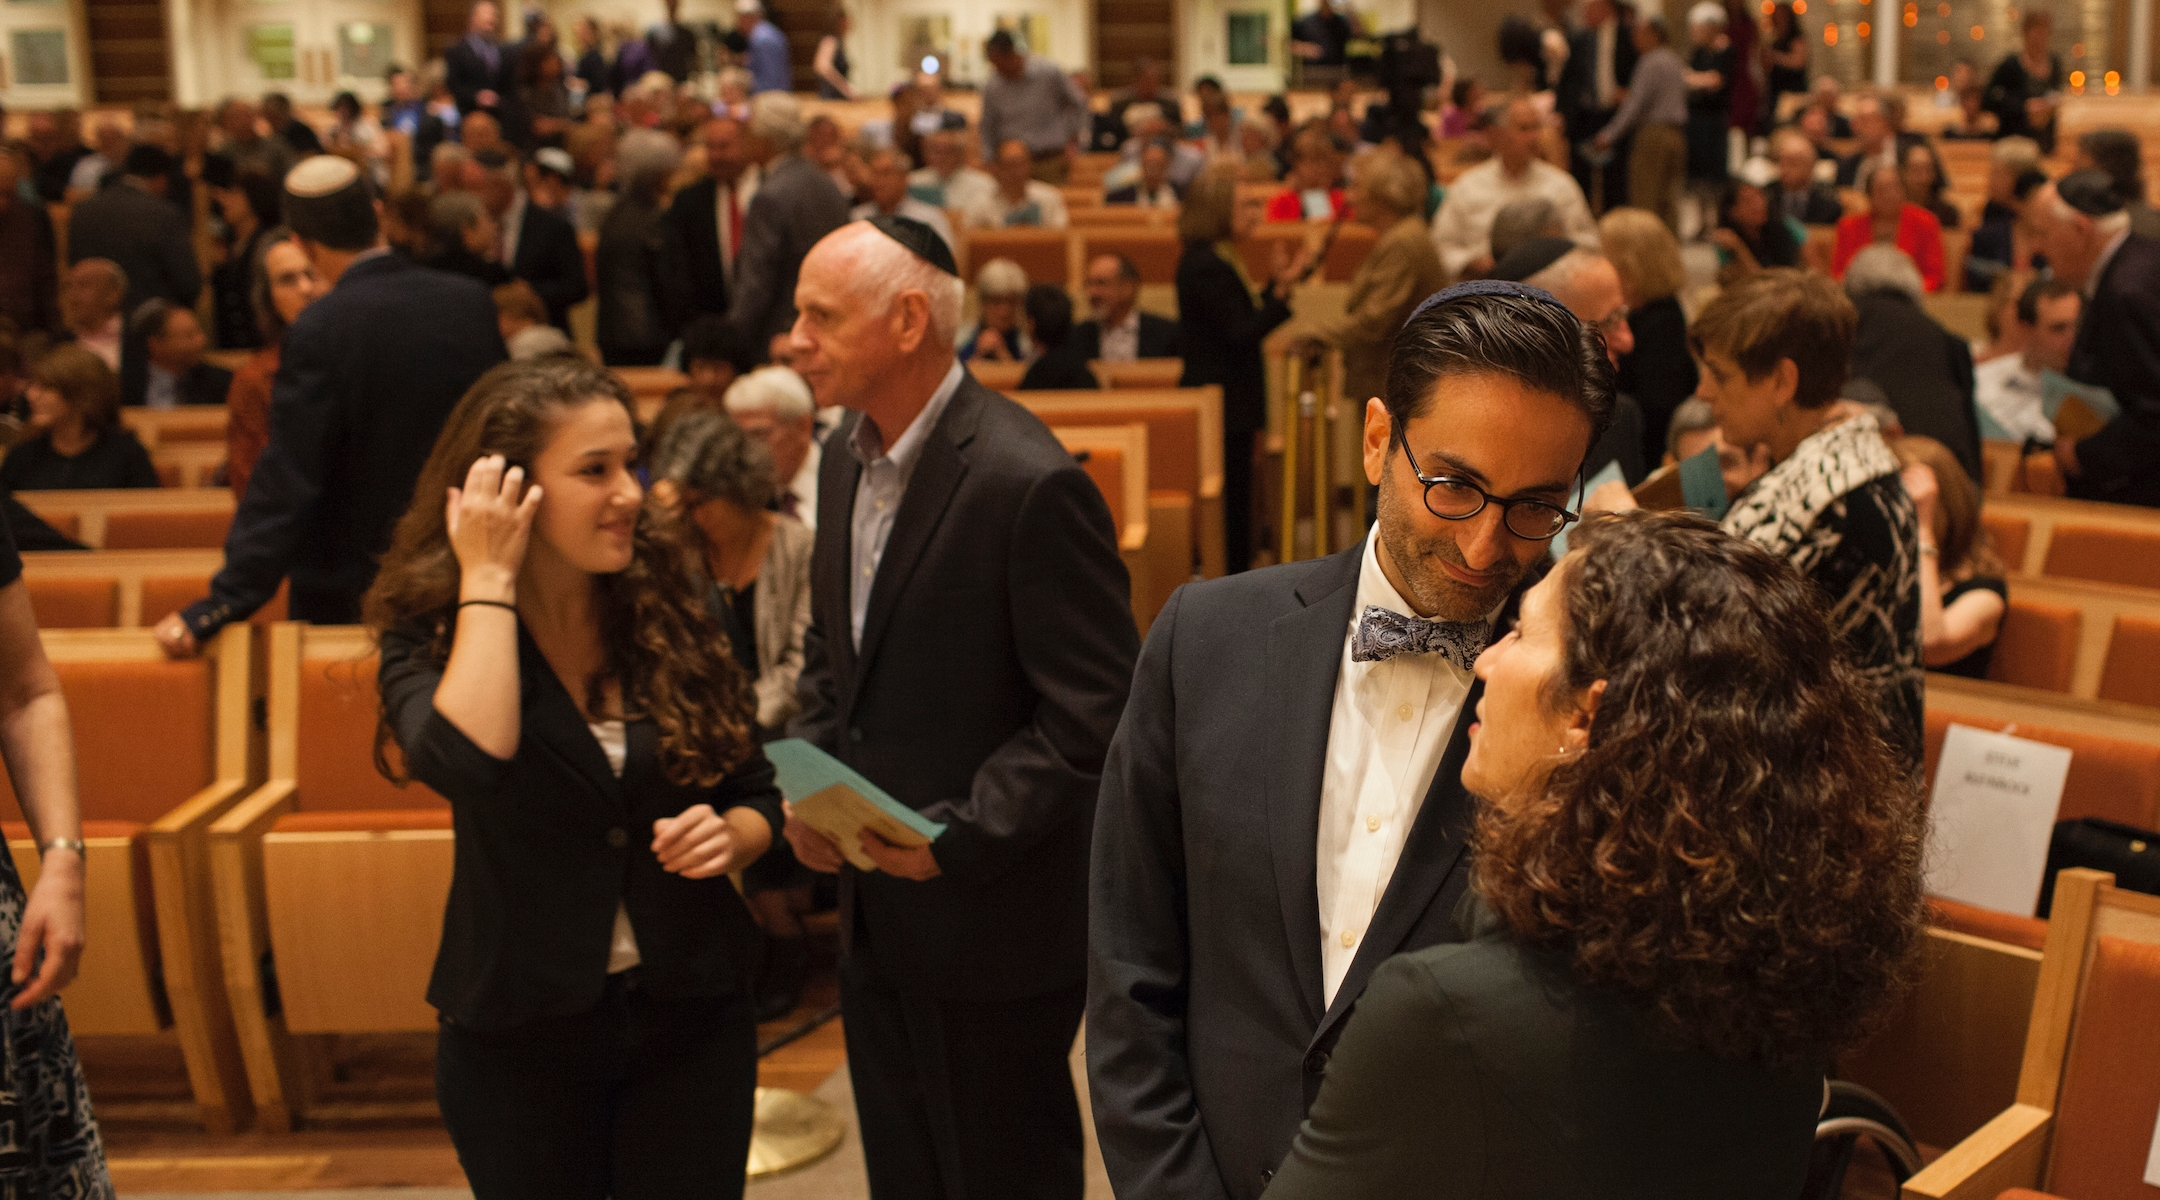 People crowd the sanctuary of Adas Israel Congregation, a Washington, D.C., Conservative synagogue, for a buidling dedication ceremony on October 2, 2013. The synagogue is maintaining its annual dues this year but expects a budget shortfall. (Jared Soares/The Washington Post via Getty Images)